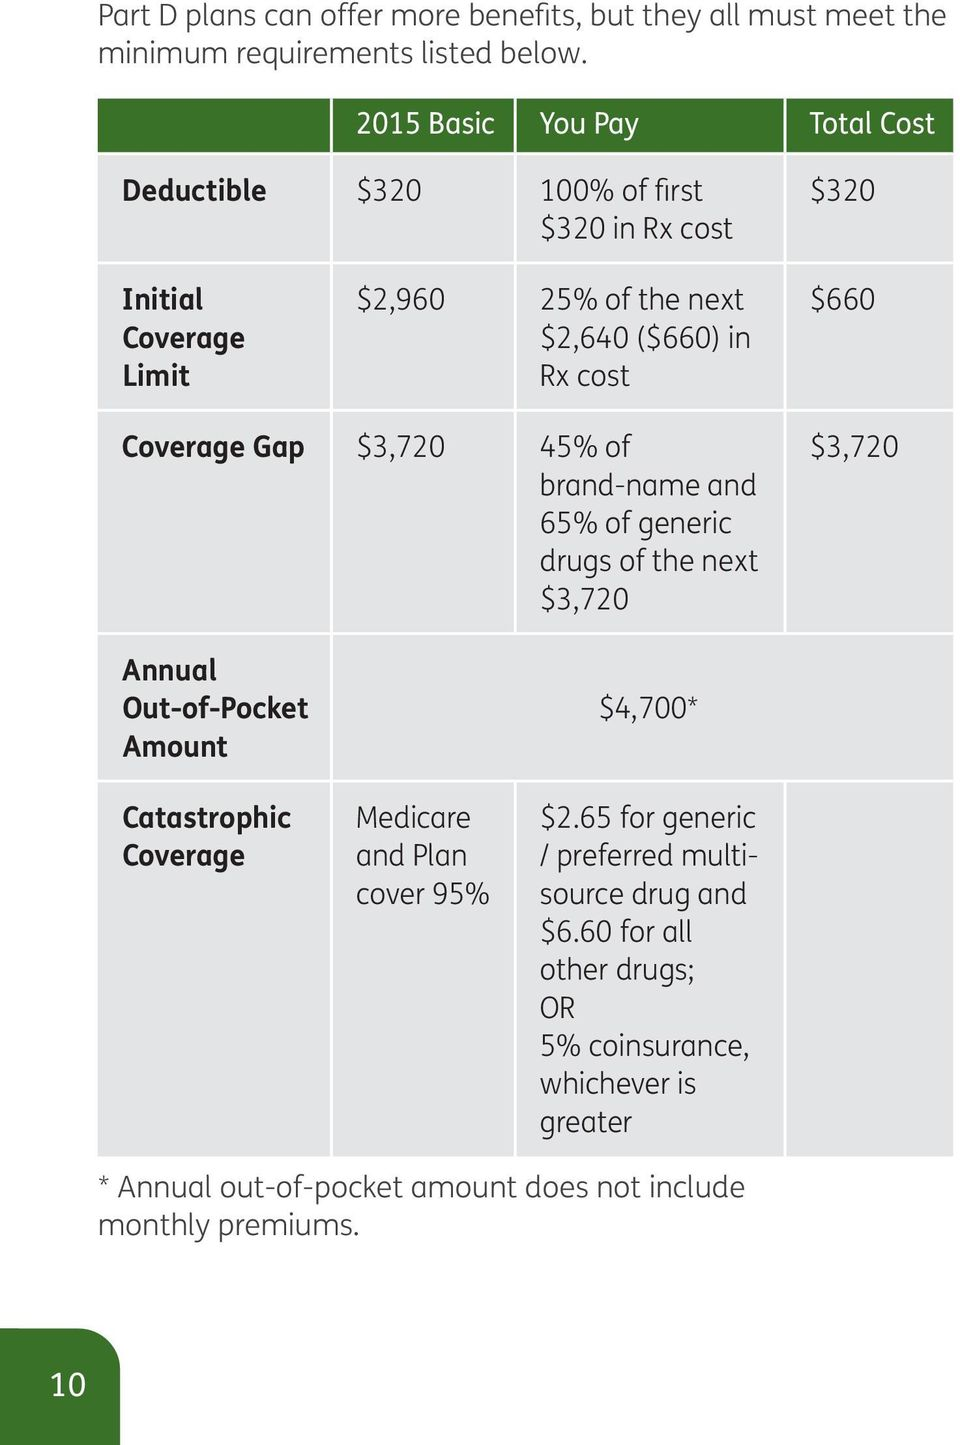 $660 Coverage Gap $3,720 45% of brand-name and 65% of generic drugs of the next $3,720 $3,720 Annual Out-of-Pocket Amount Catastrophic Coverage Medicare